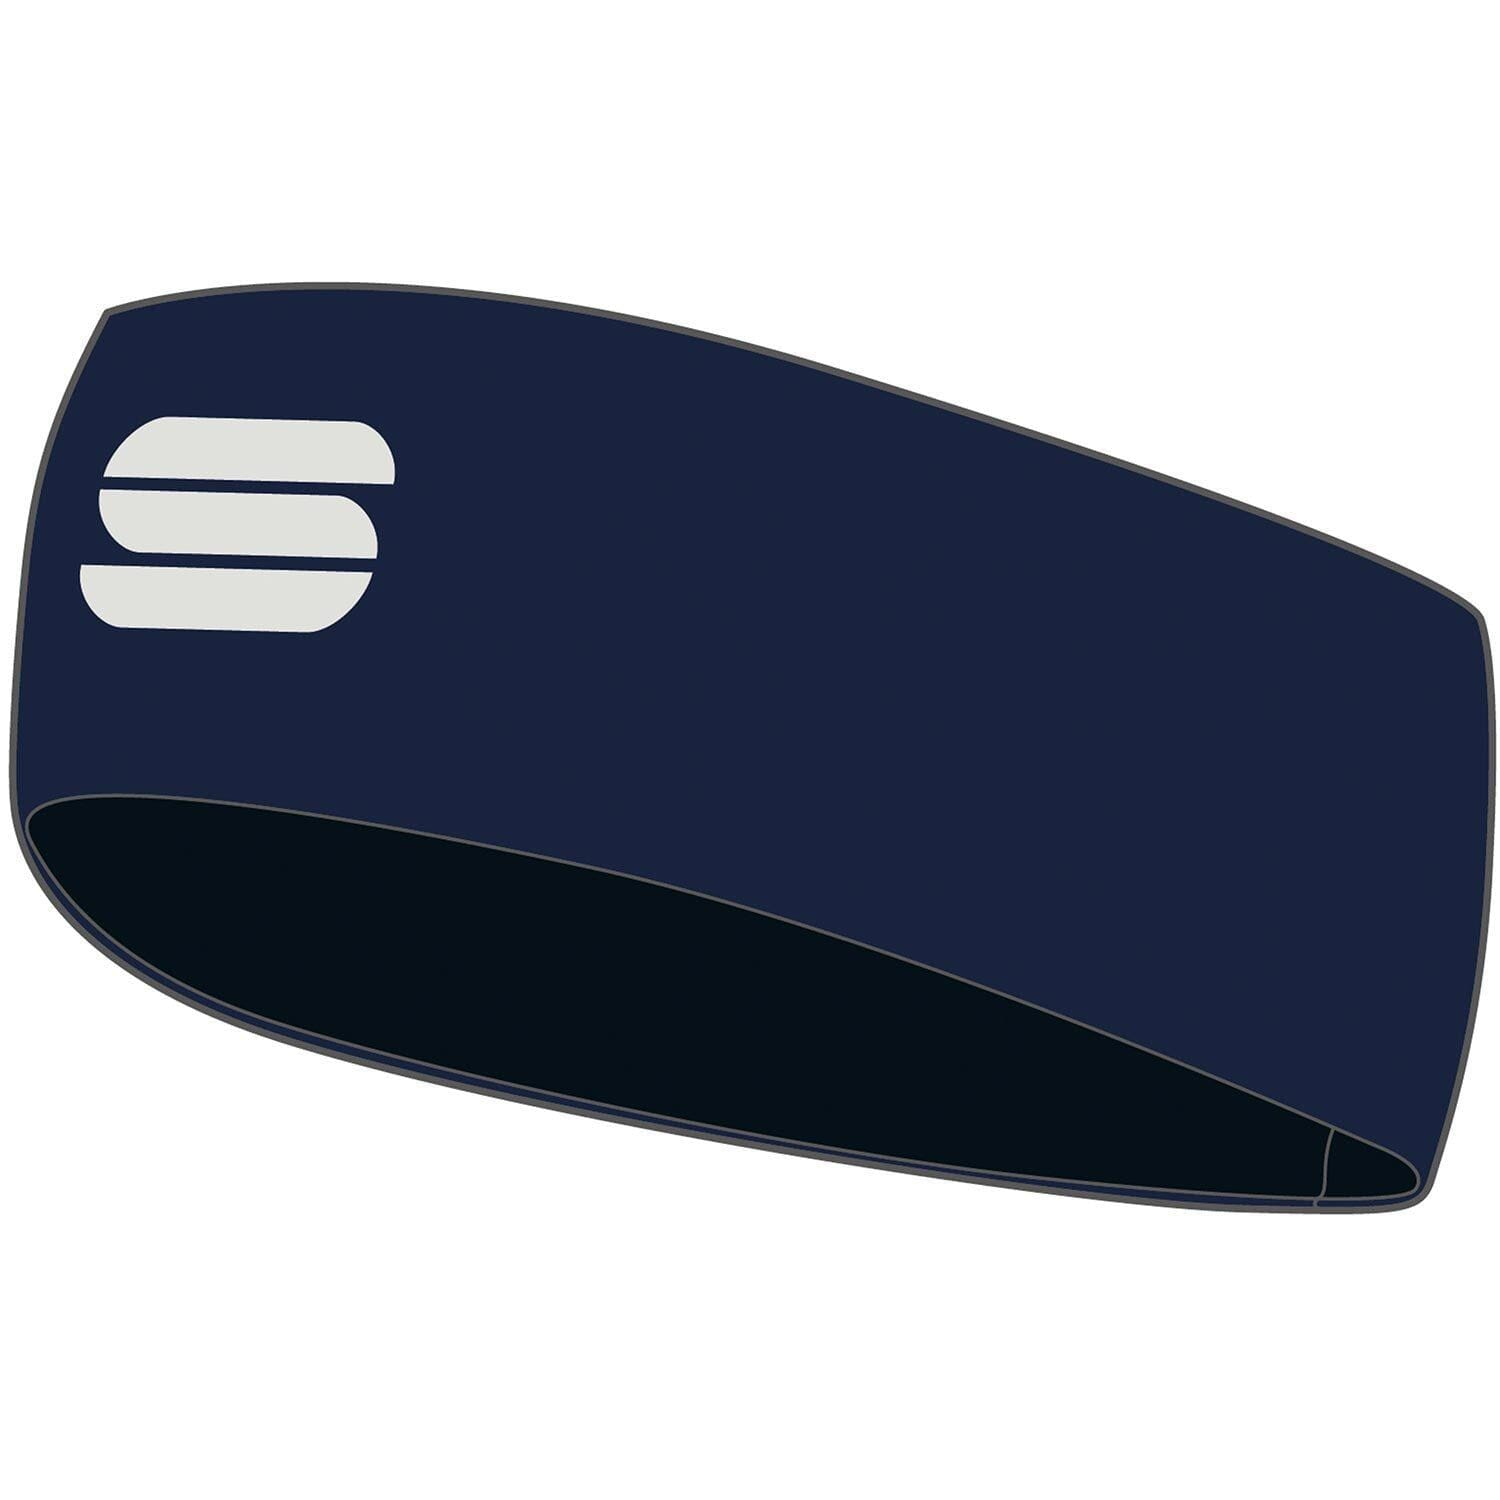 Sportful-Sportful Matchy Headband-Blue-UNI-SF210830138-saddleback-elite-performance-cycling